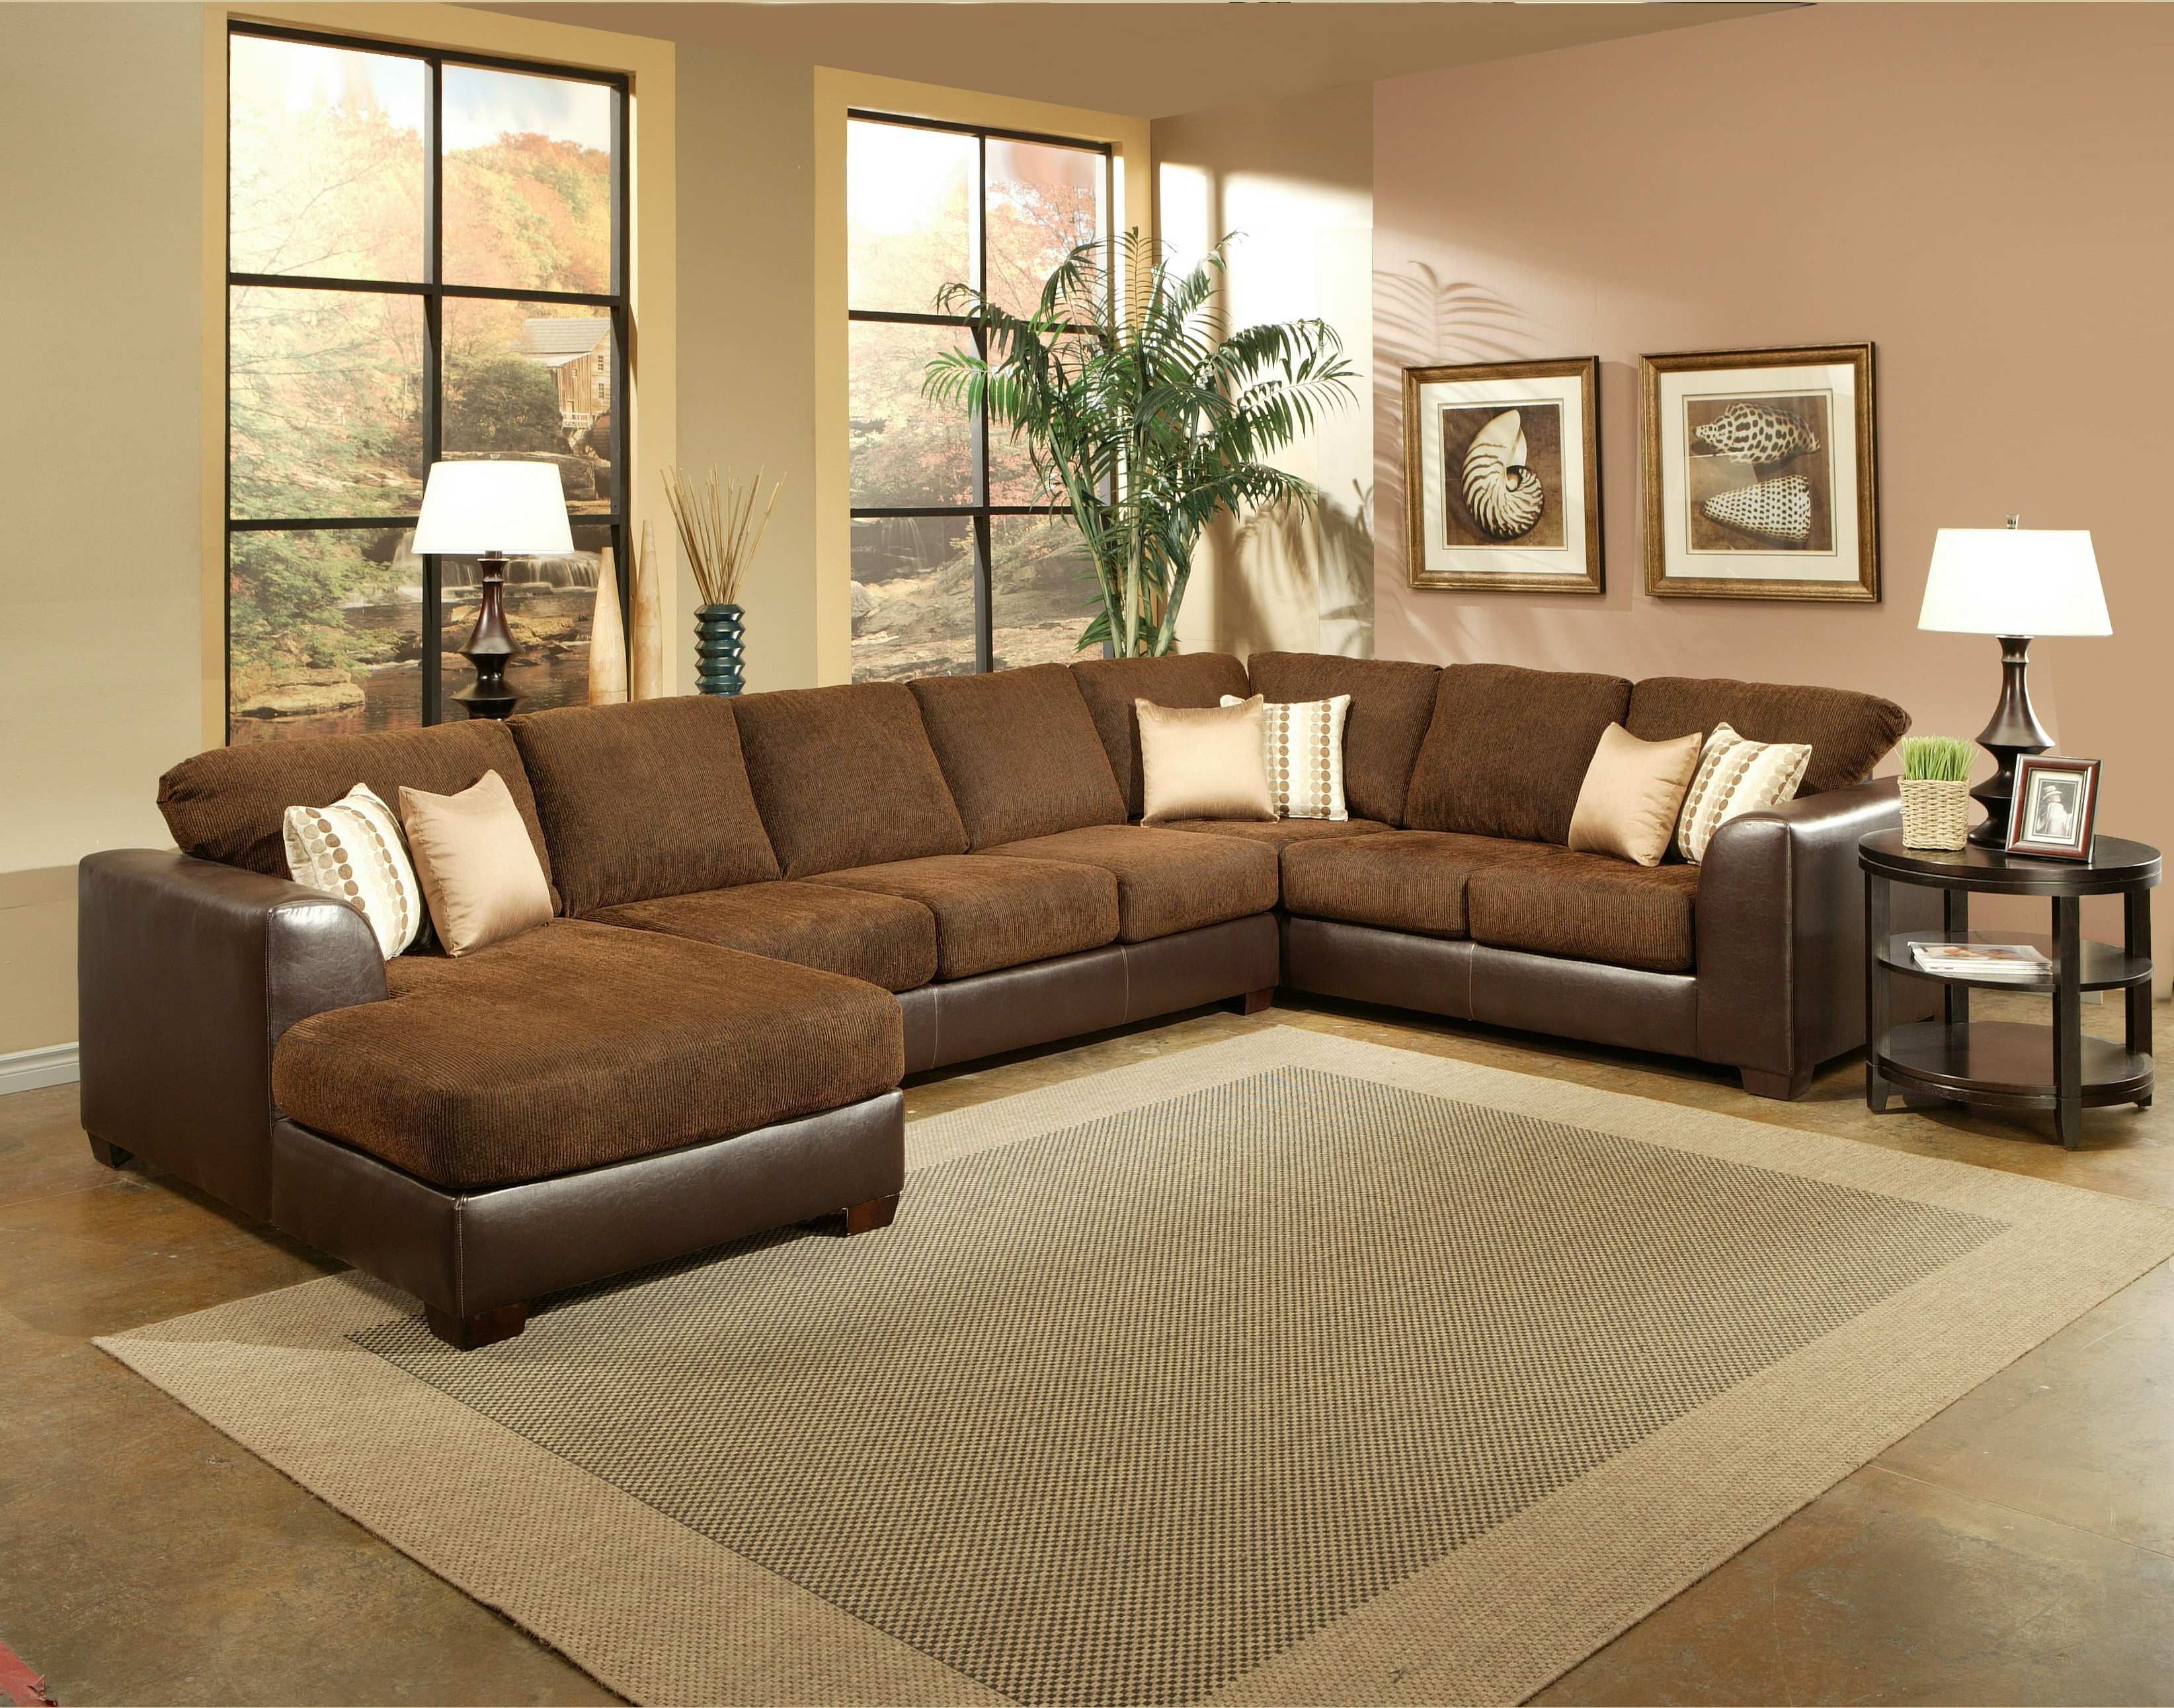 Benchley 3 Pc York Sectional For Popular Sierra Foam Ii 3 Piece Sectionals (Gallery 10 of 20)